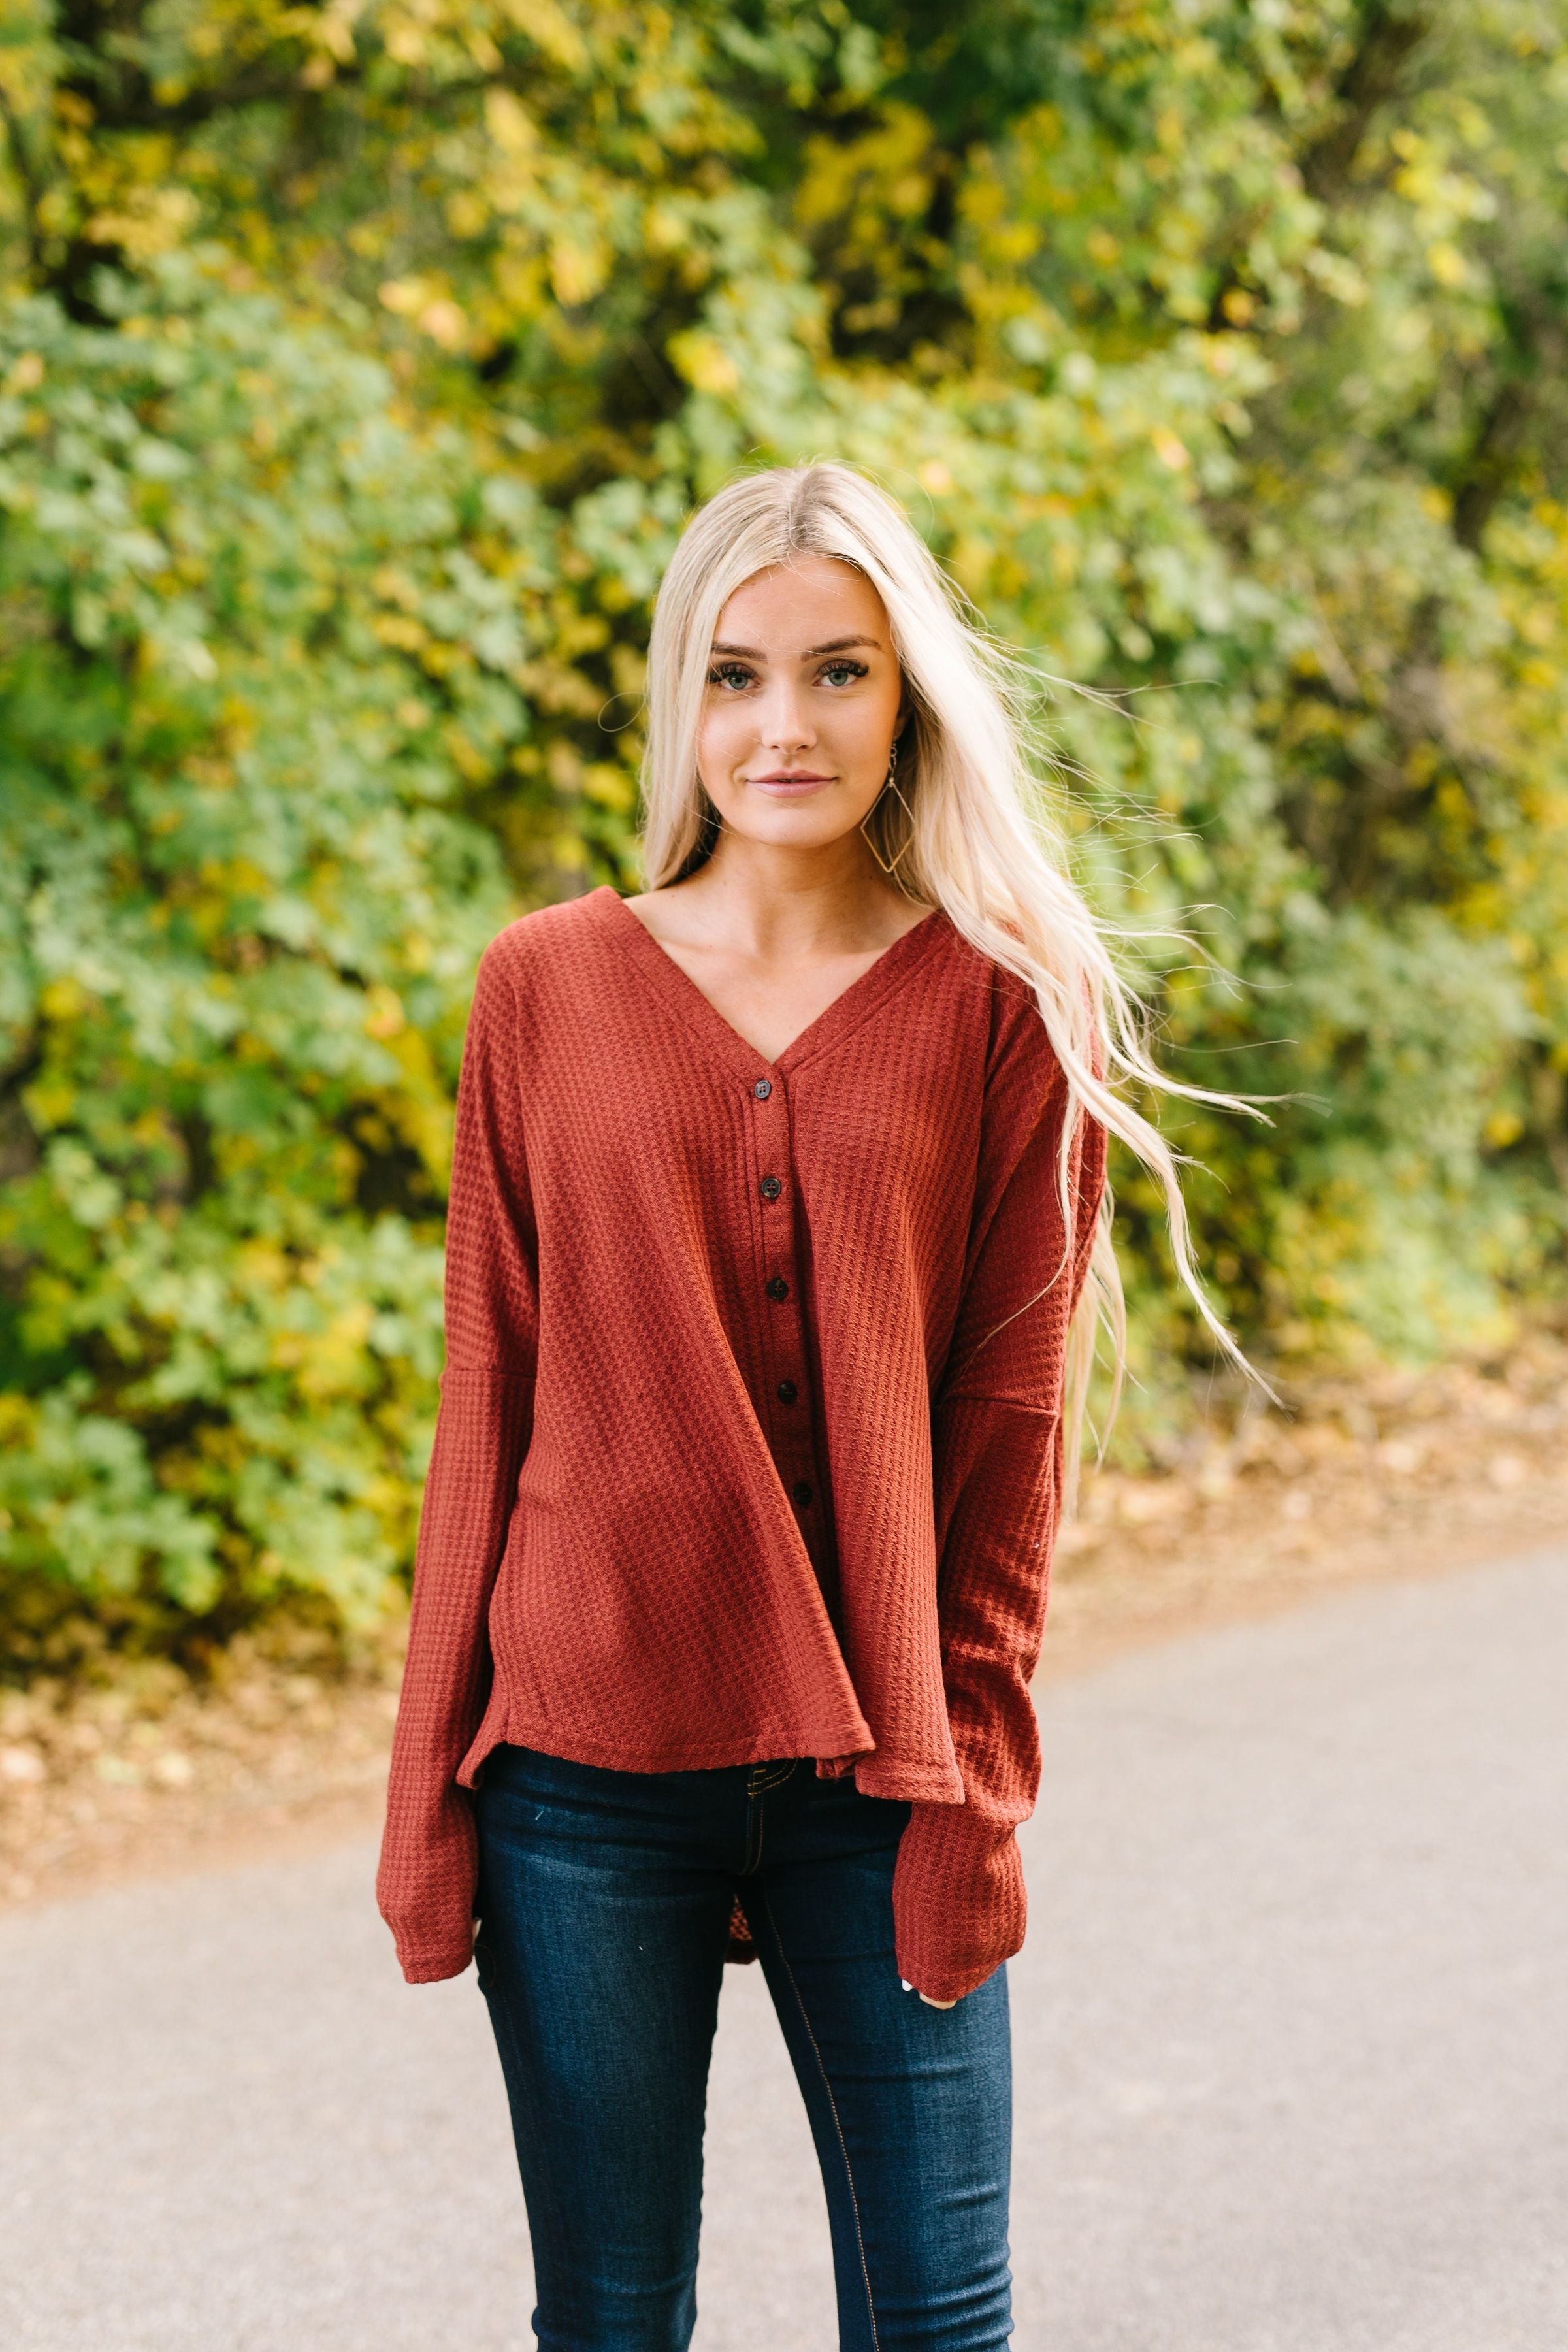 Harvest Buttondown In Burgundy - ALL SALES FINAL